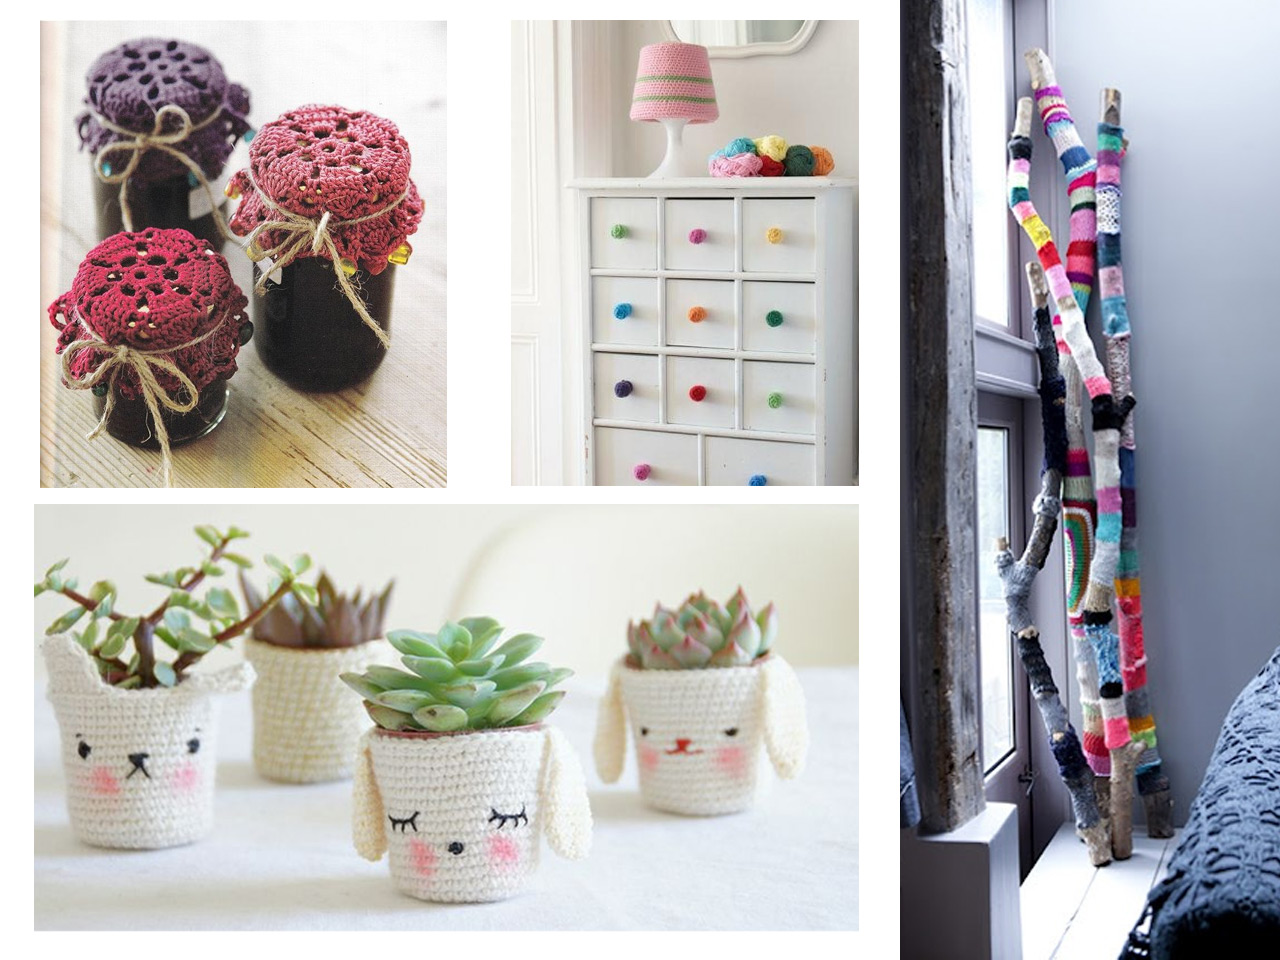 10 propuestas para decorar tu casa con crochet for Decorar mi casa reciclando